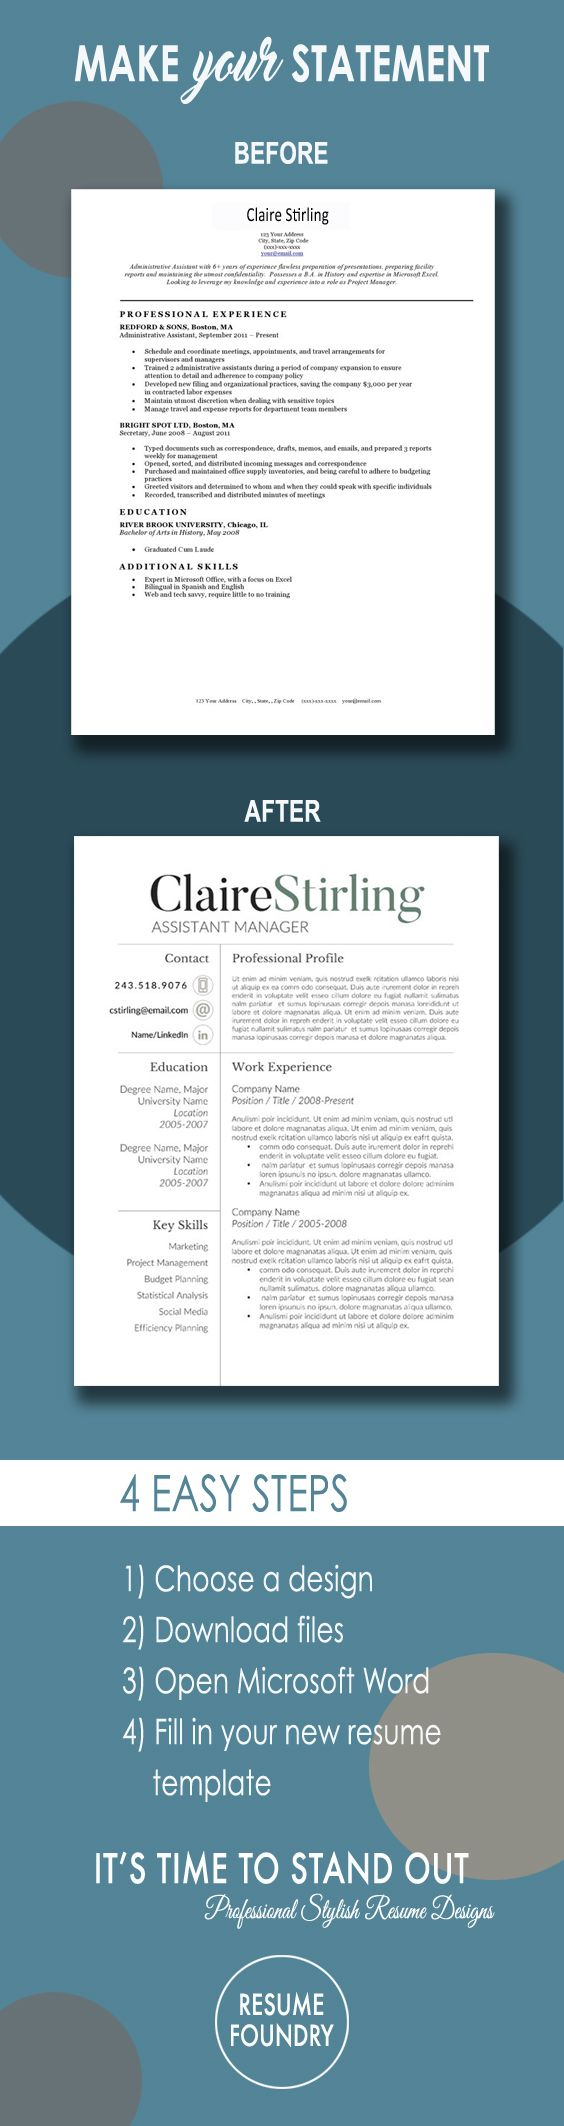 creative and modern resume template cv template cover letter update your resume in four easy steps it s time to make your statement